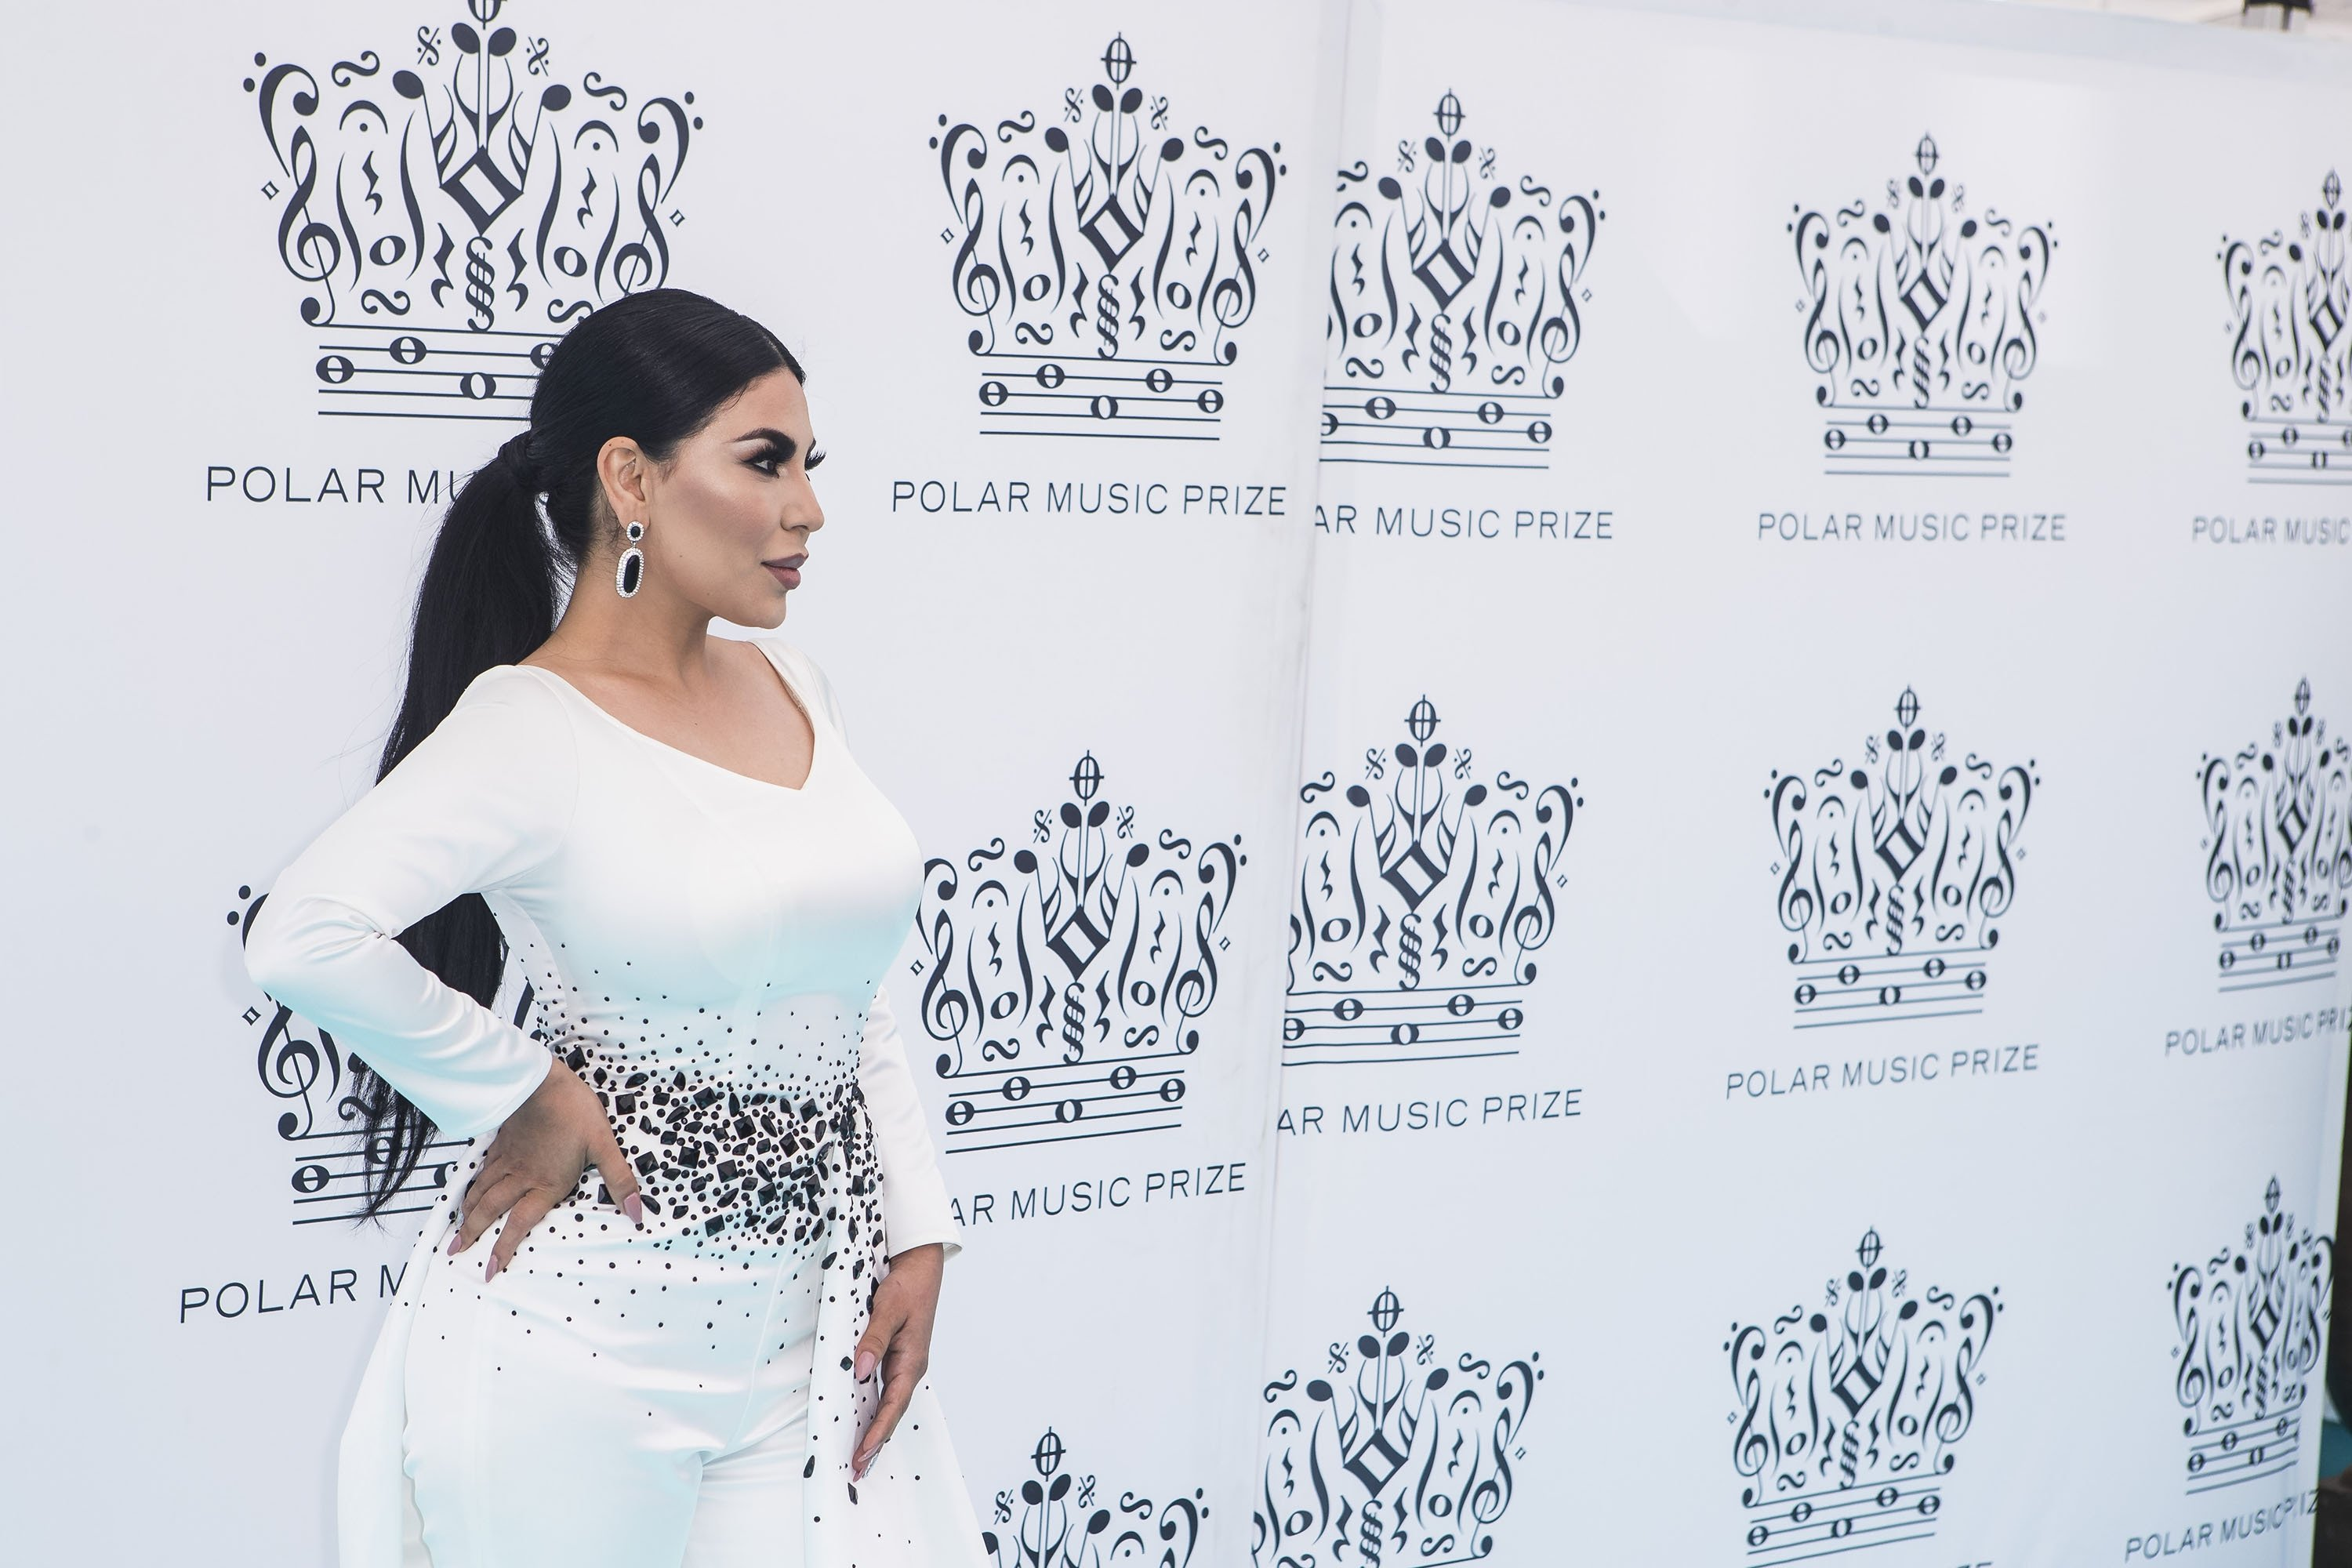 Aryana Sayeed attends the 2018 Polar Music Prize award ceremony at the Grand Hotel in Stockholm, Sweden, on June 14, 2018. (Getty Images)